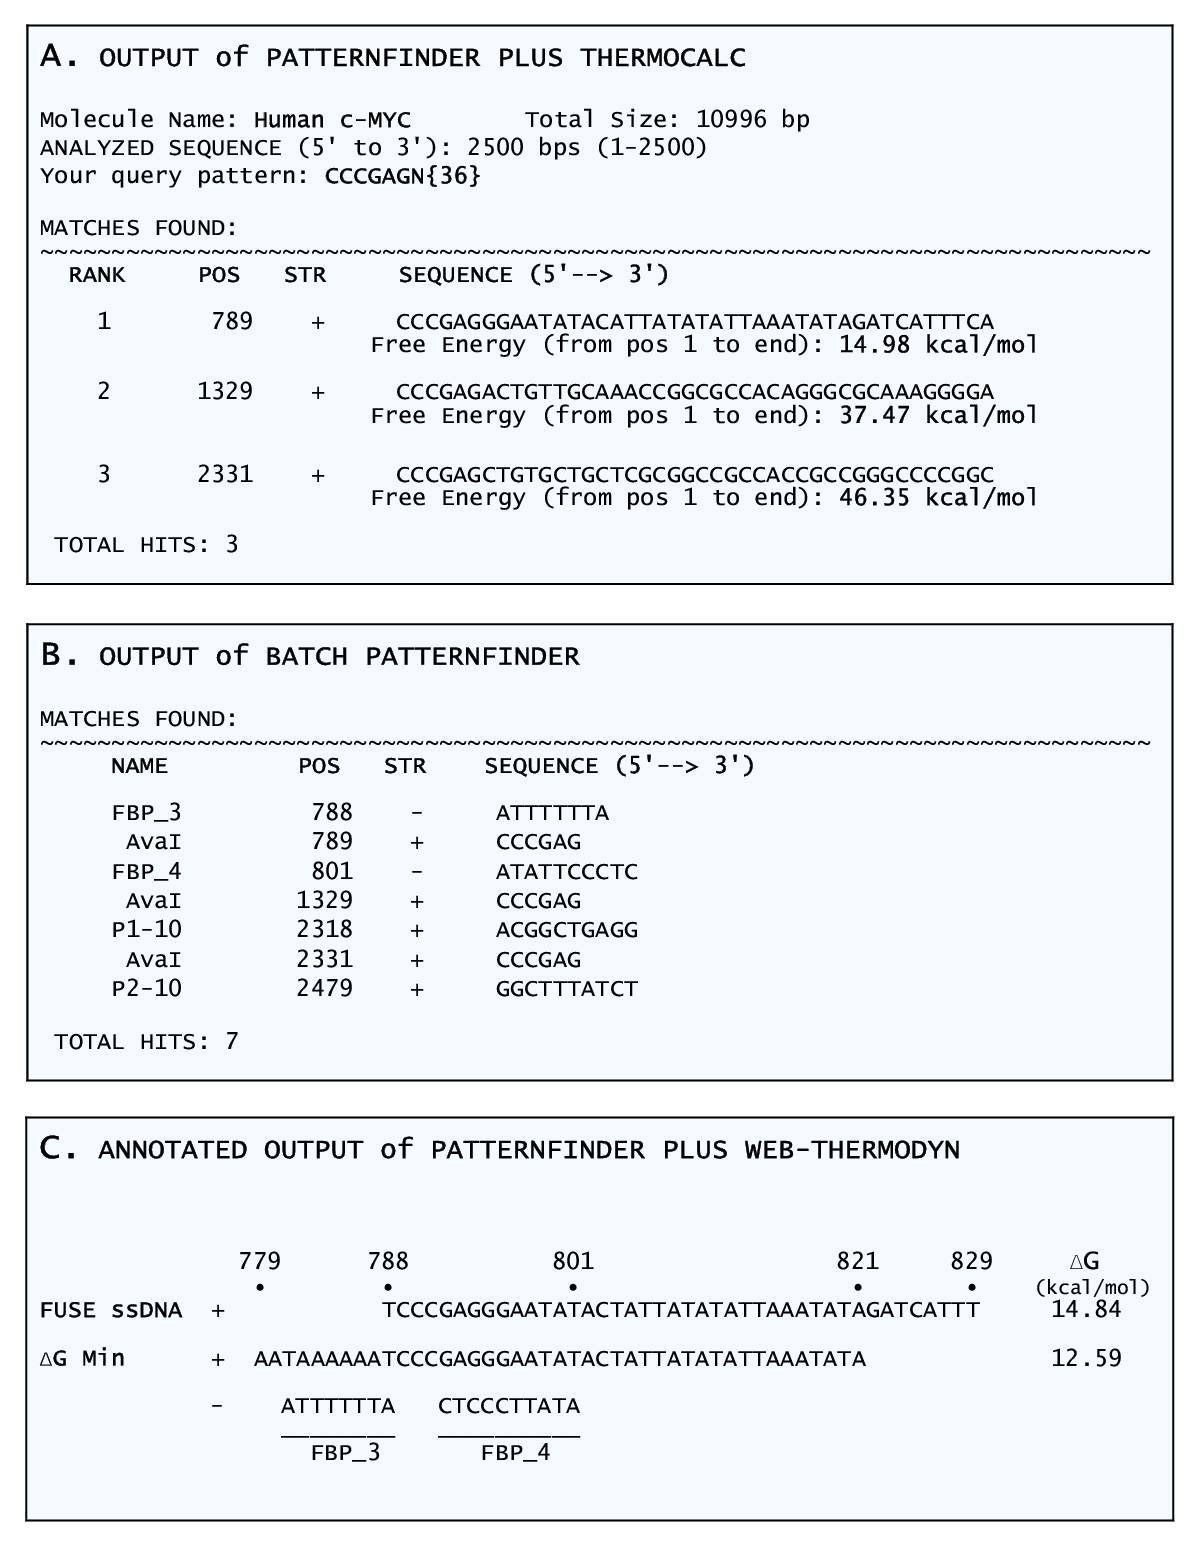 http://static-content.springer.com/image/art%3A10.1186%2F1471-2105-5-134/MediaObjects/12859_2004_Article_250_Fig1_HTML.jpg